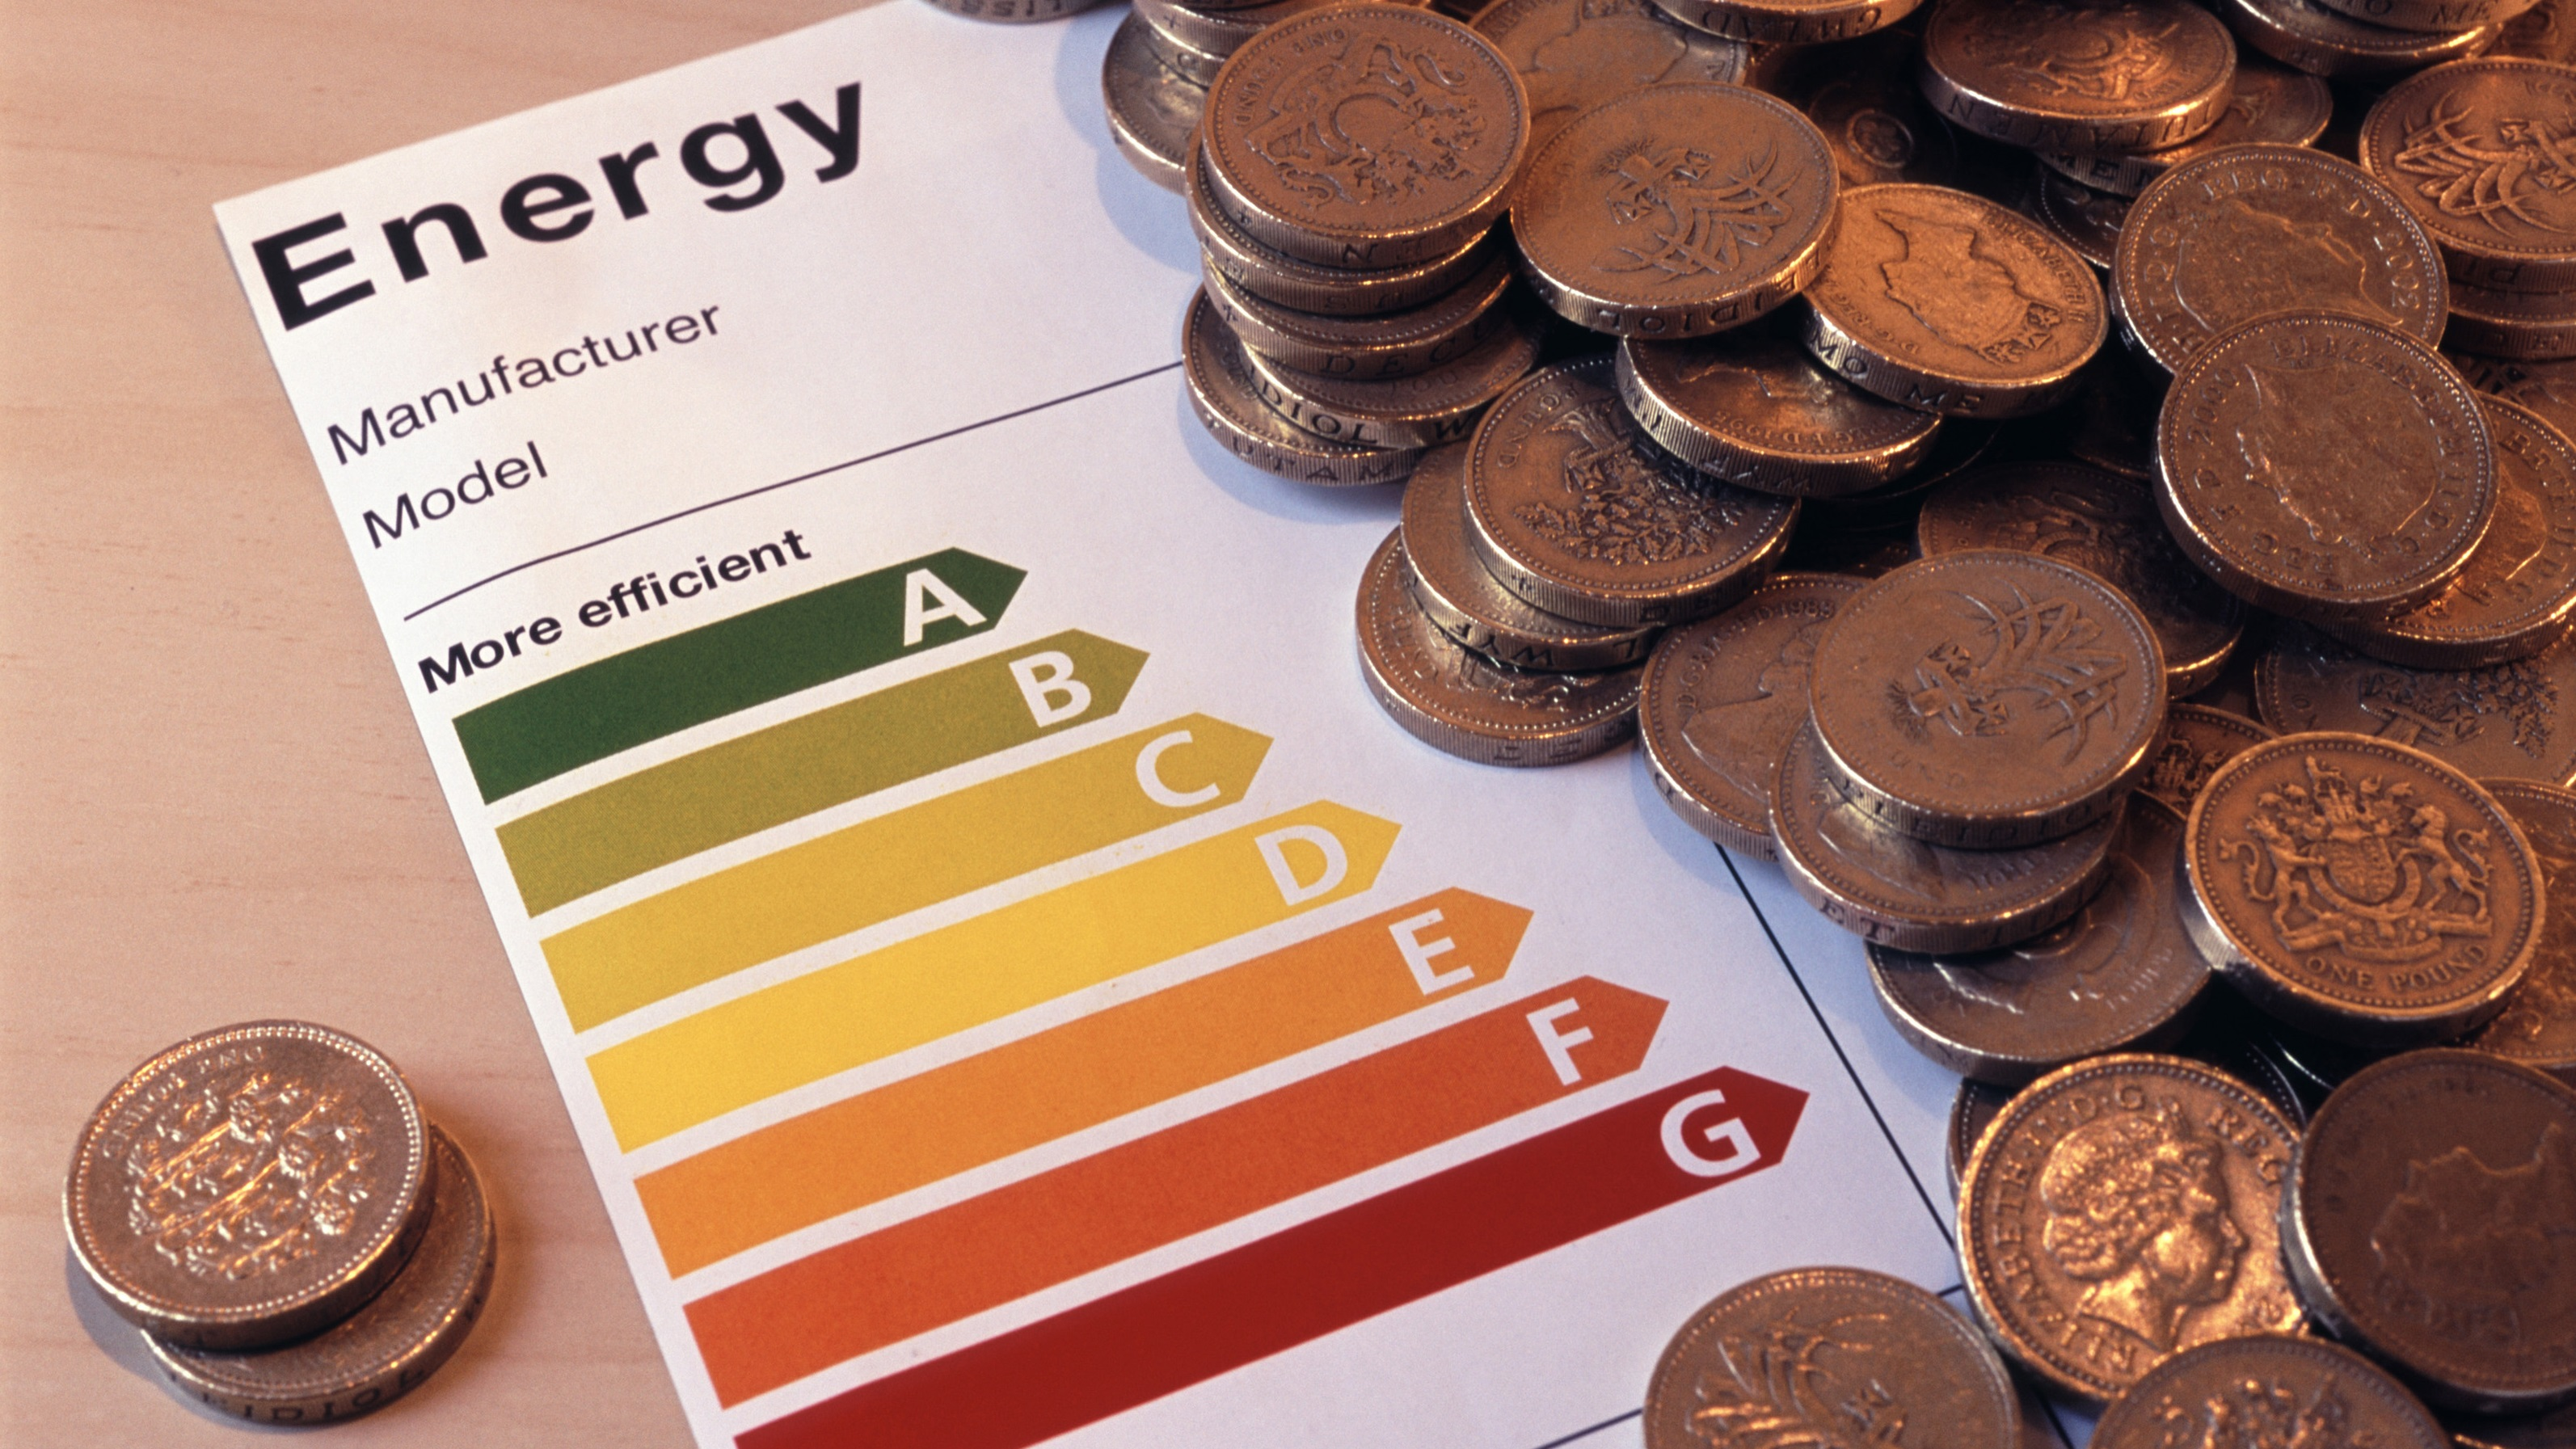 Landlords must comply with latest energy standards